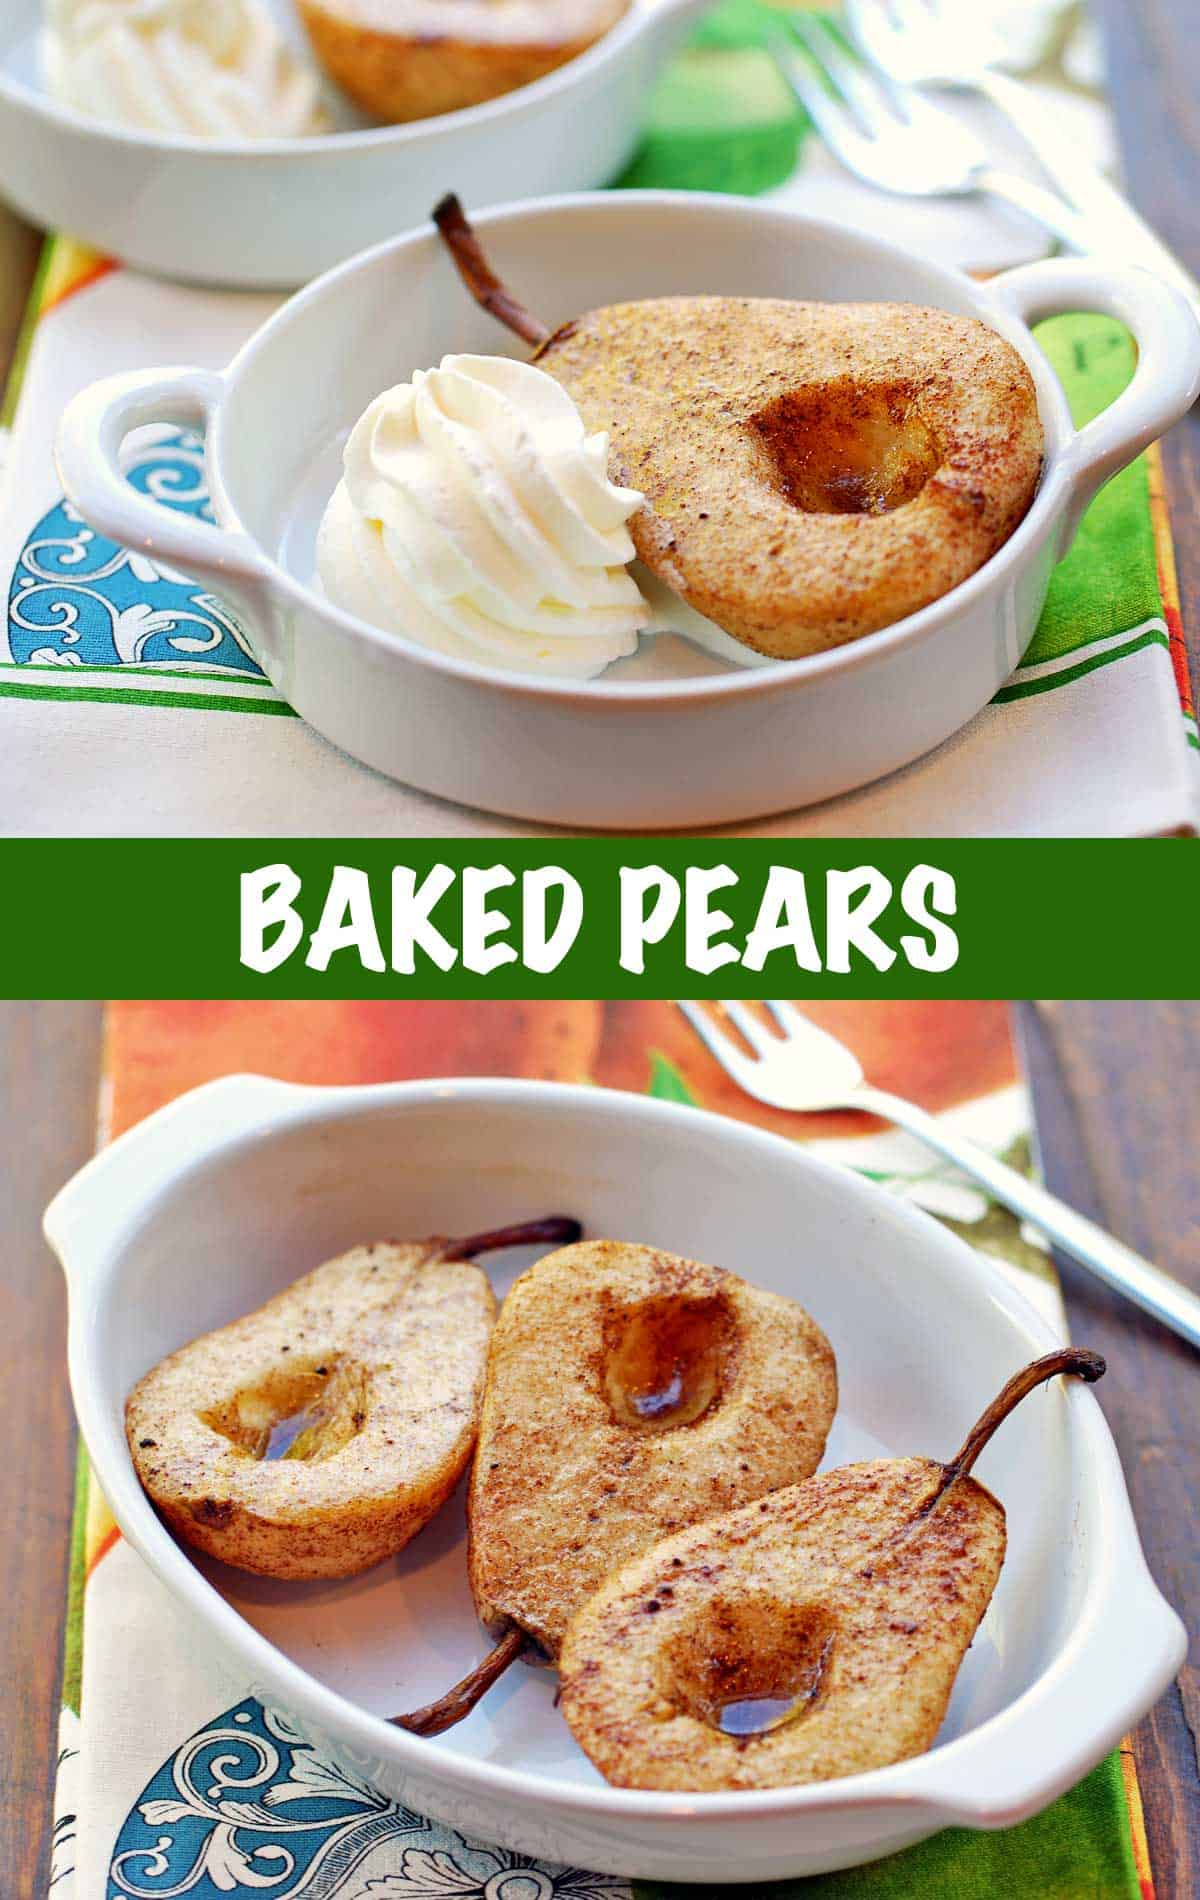 A two-photo collage of baked pears served in a white baking dish.